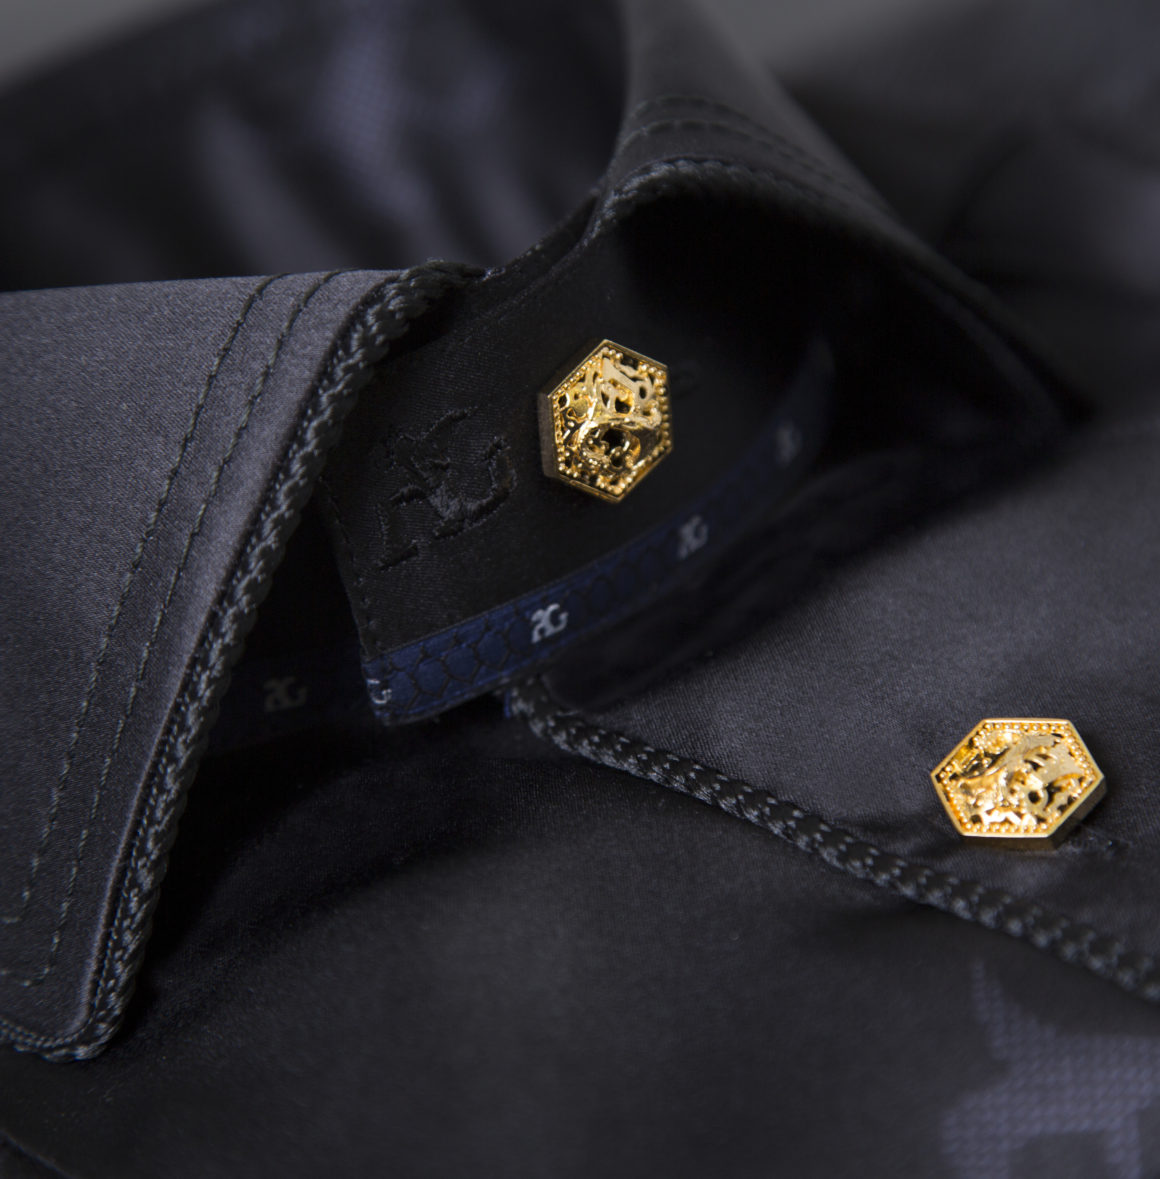 Angelo Galasso GOLD collection shirt